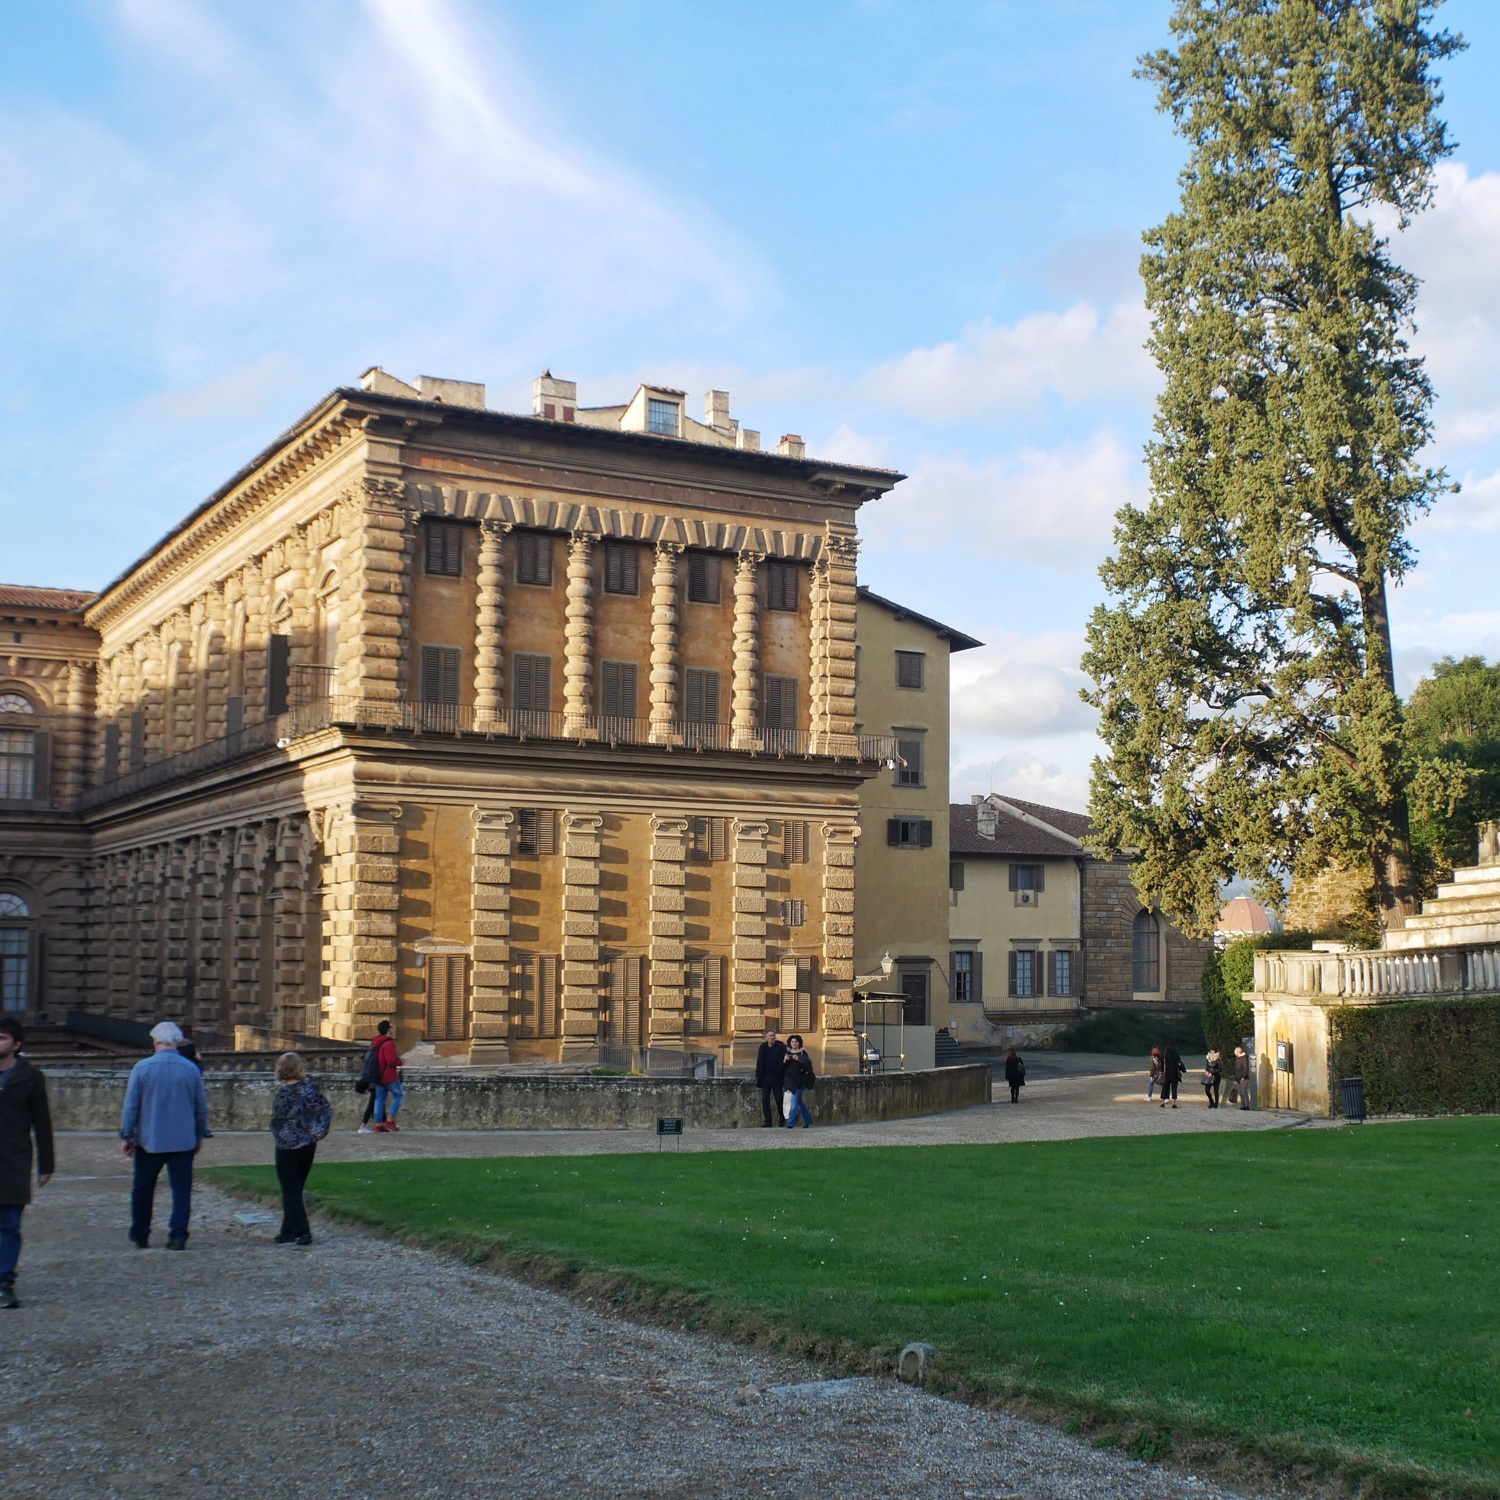 Pitti Palace in Florence, Italy Photo Heatheronhertravels.com